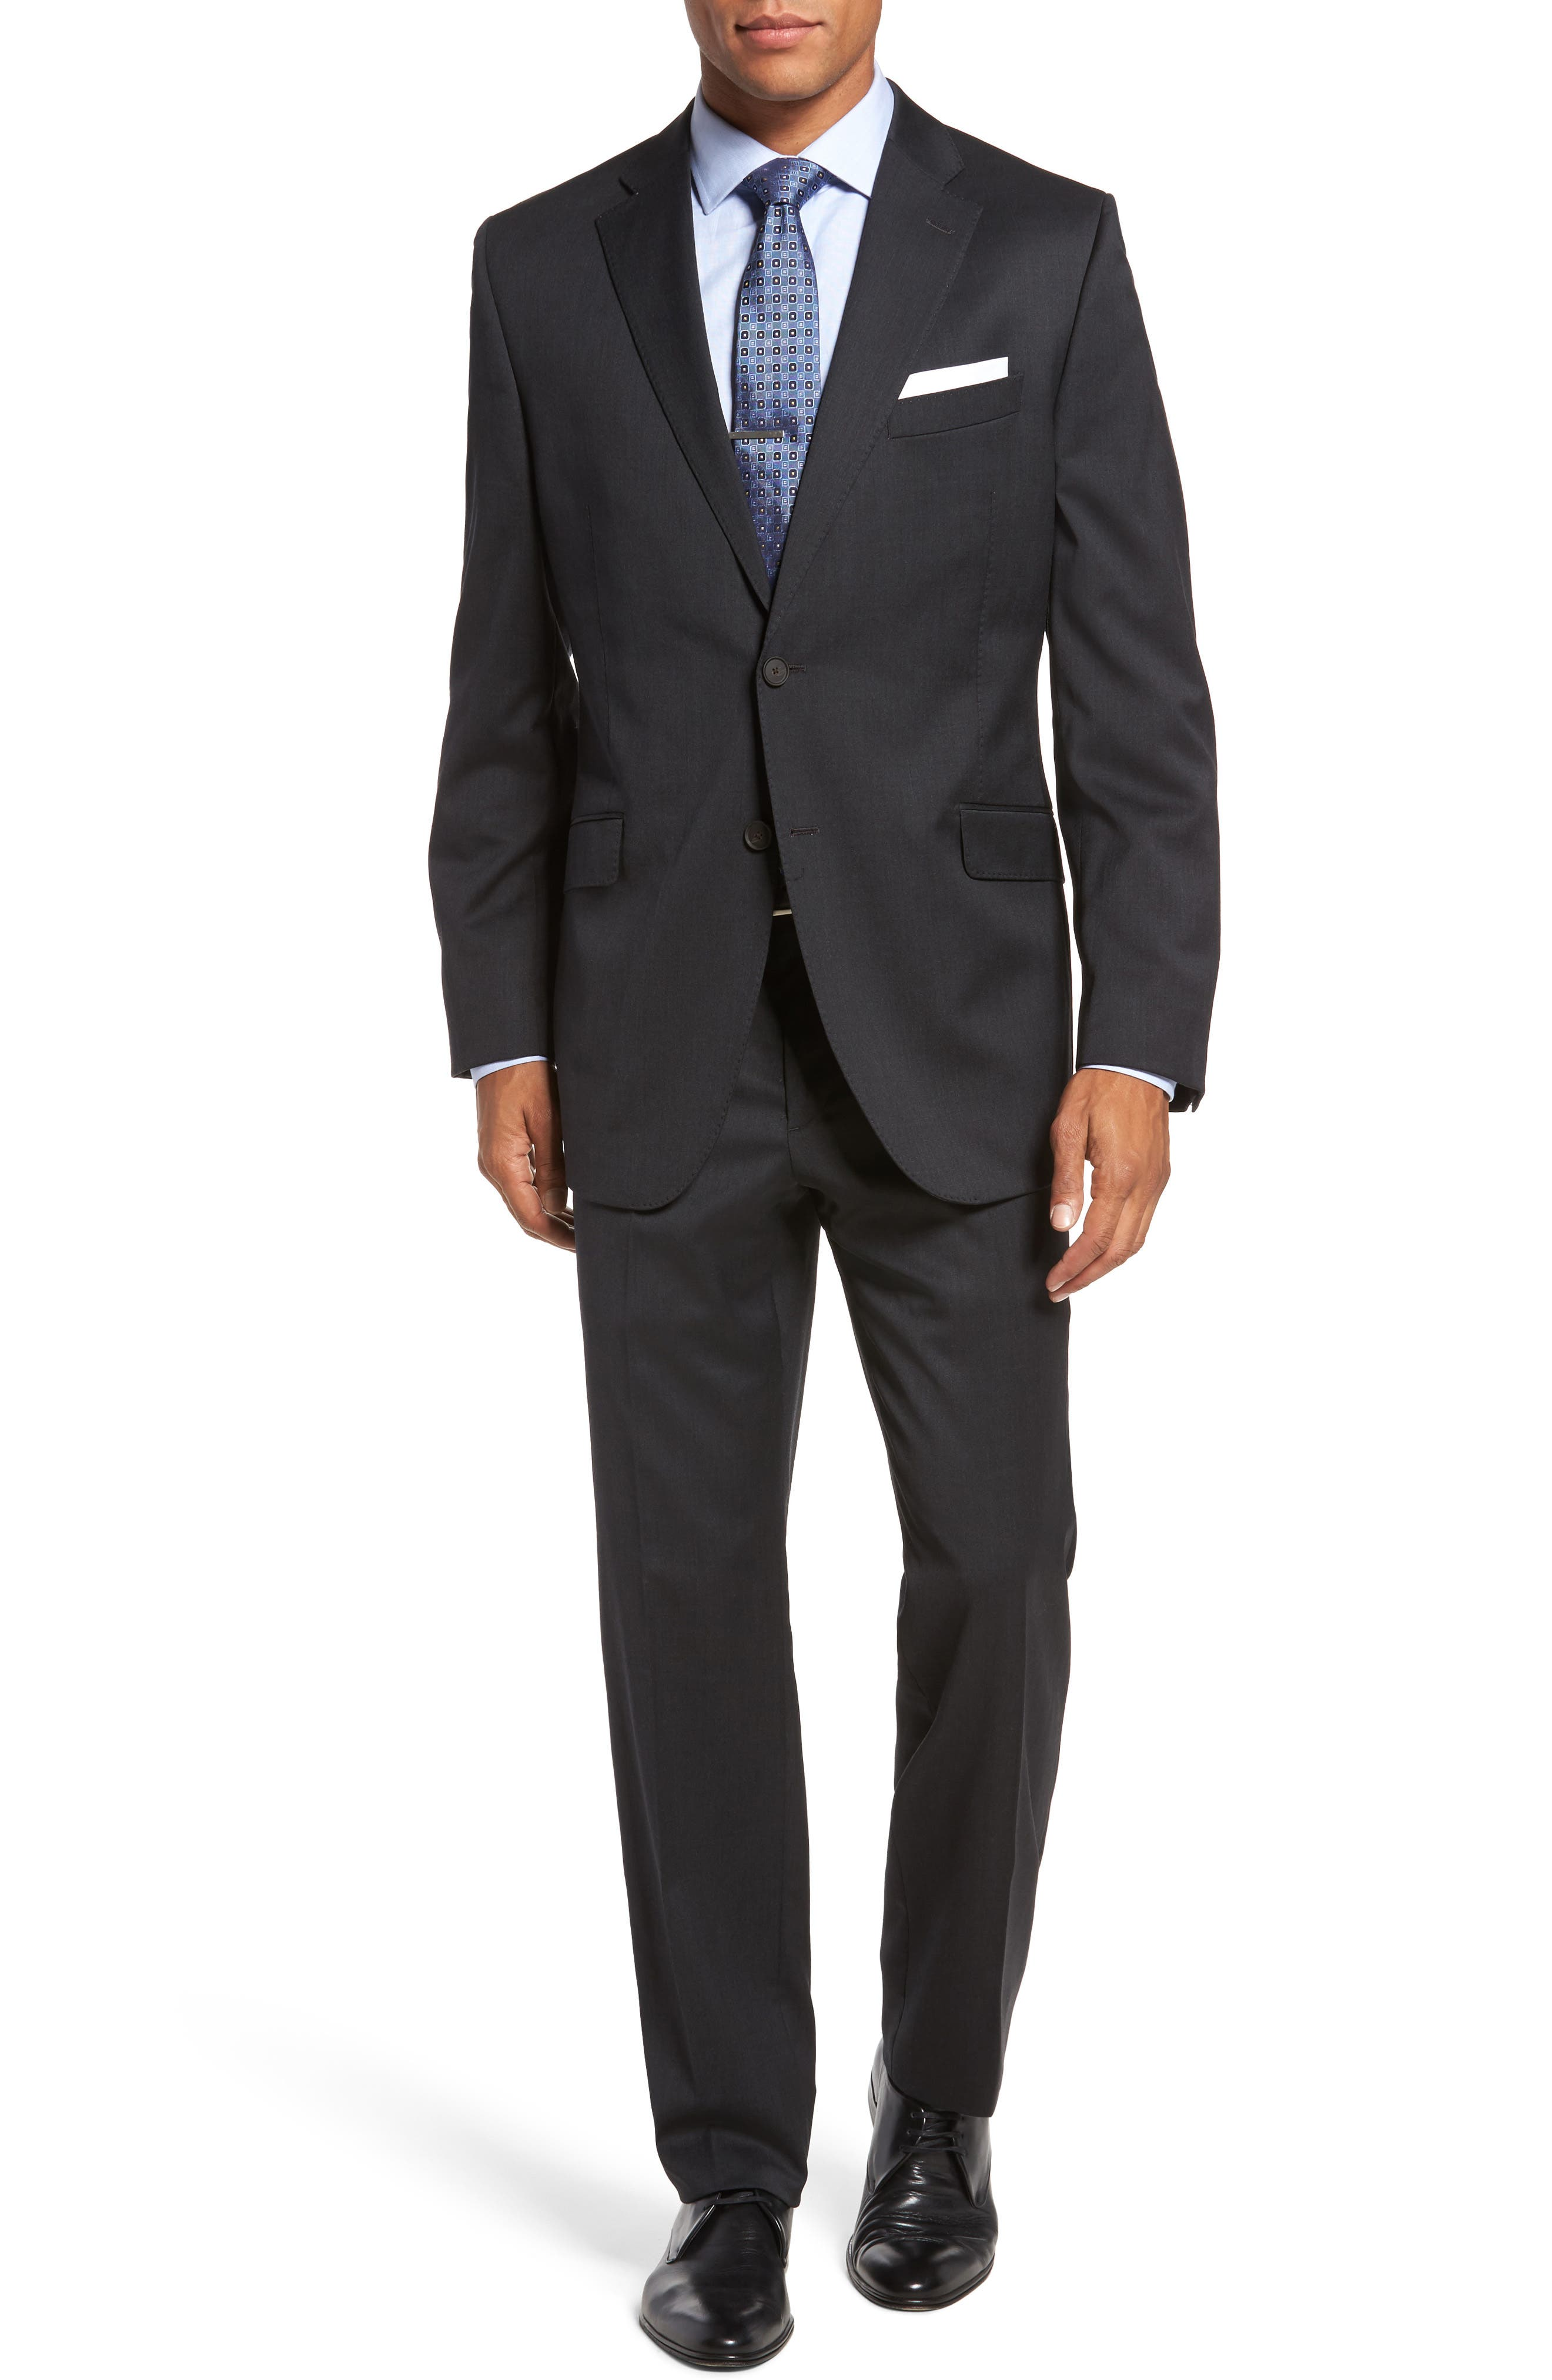 Keidis Aim Classic Fit Stretch Wool Suit,                         Main,                         color, Charcoal